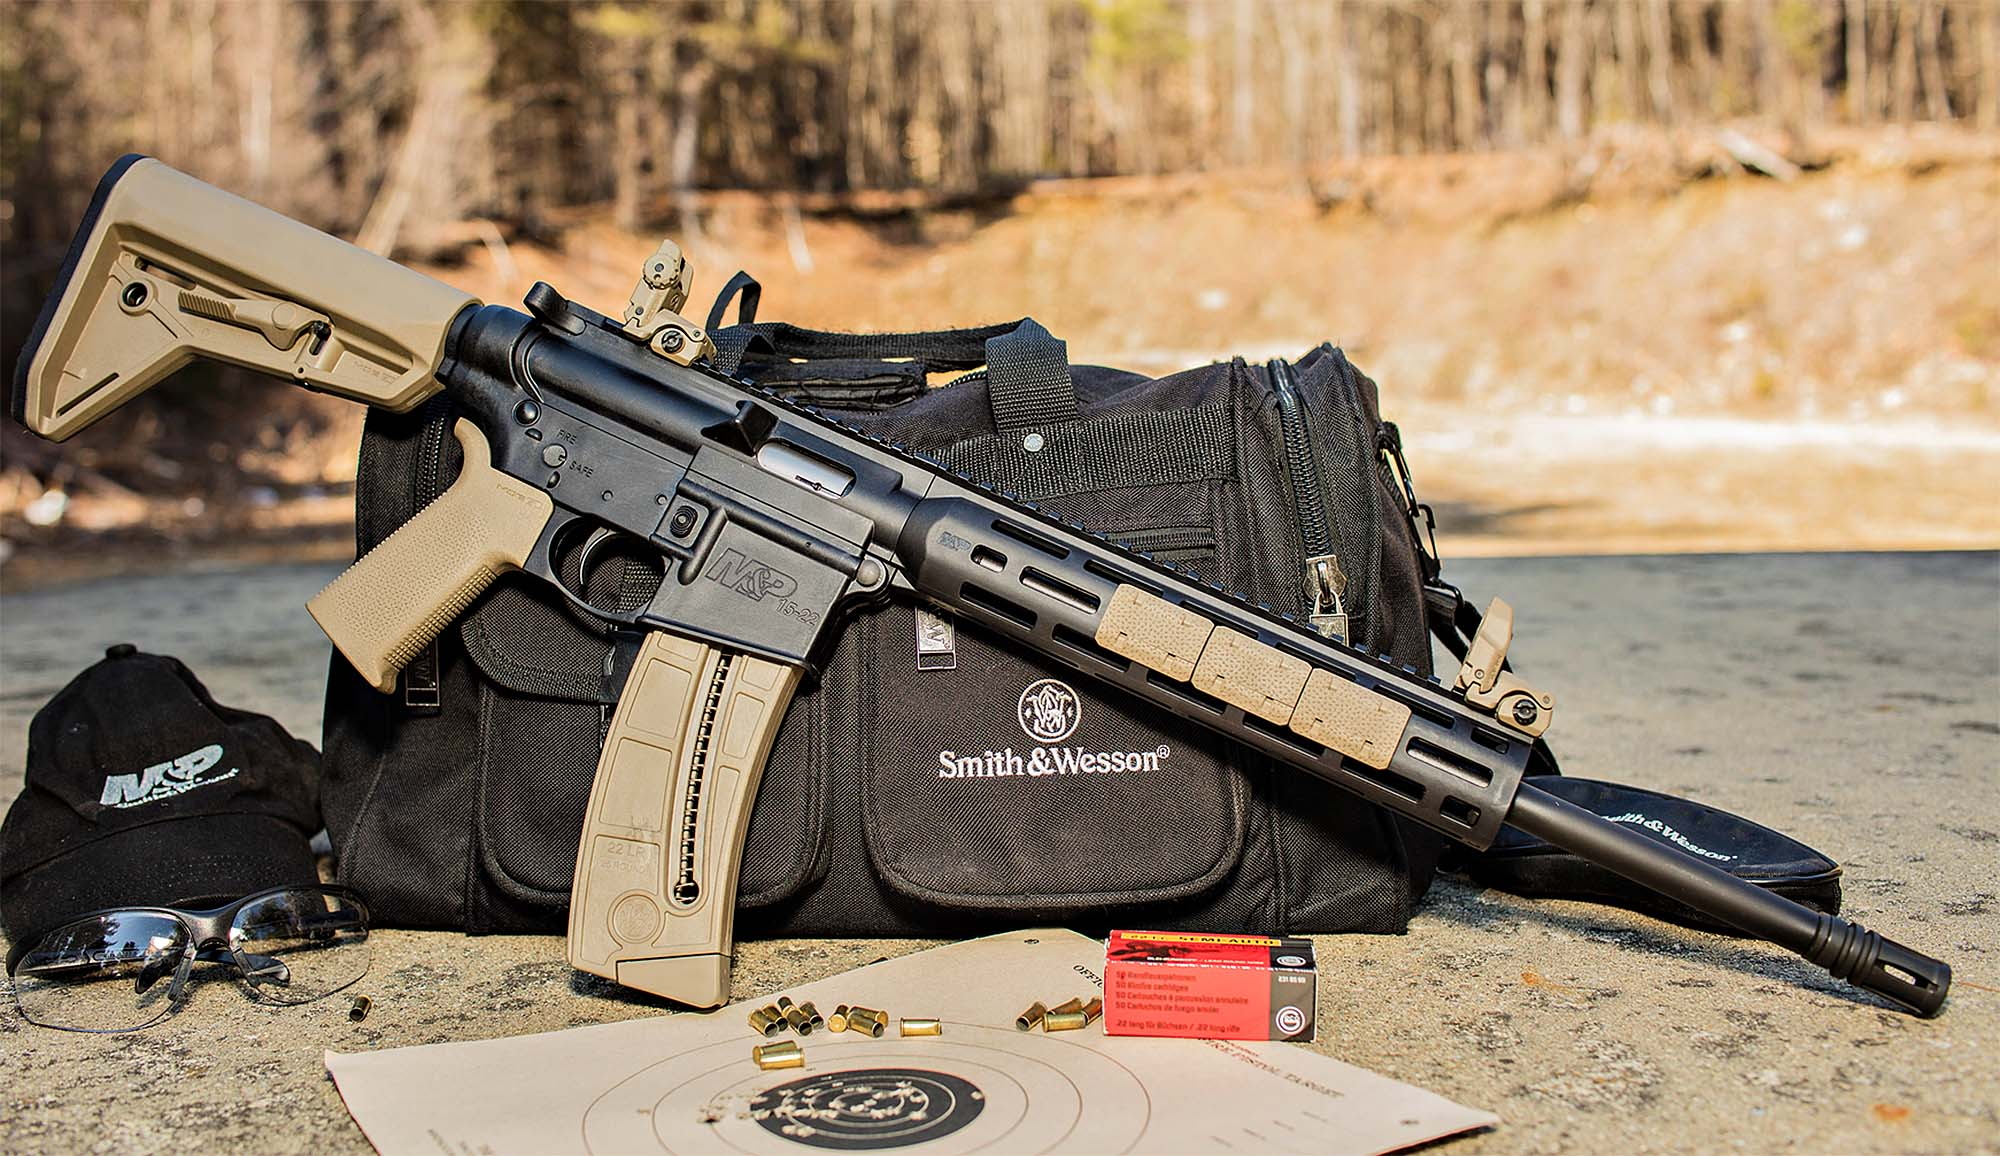 Smith & Wesson M&P 15-22 SPORT Rifle with Magpul MOE SL ...